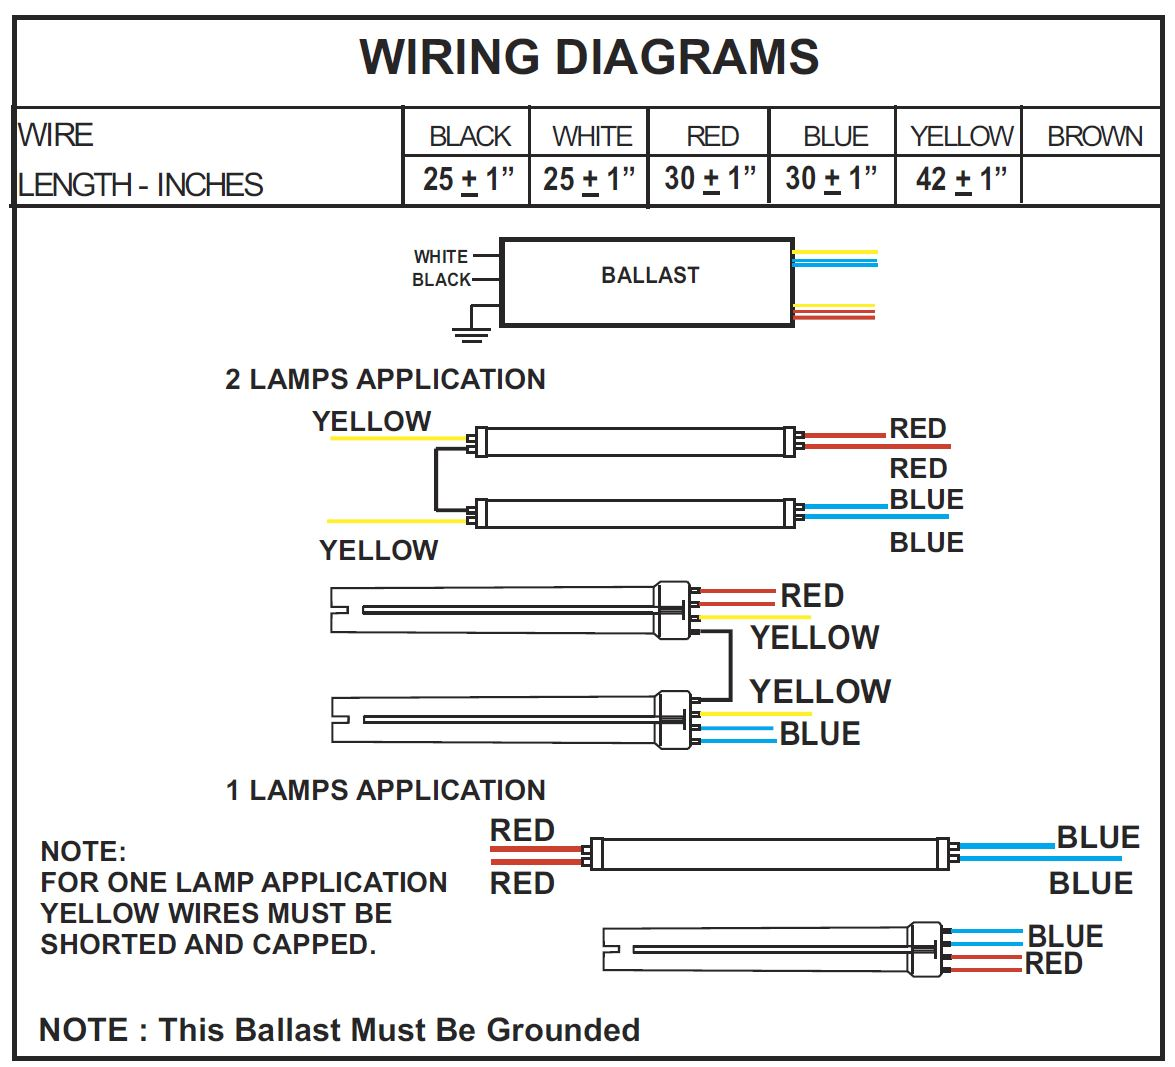 4 lamp t5ho wiring diagram centium ballasts great design of wiring rh homewerk co